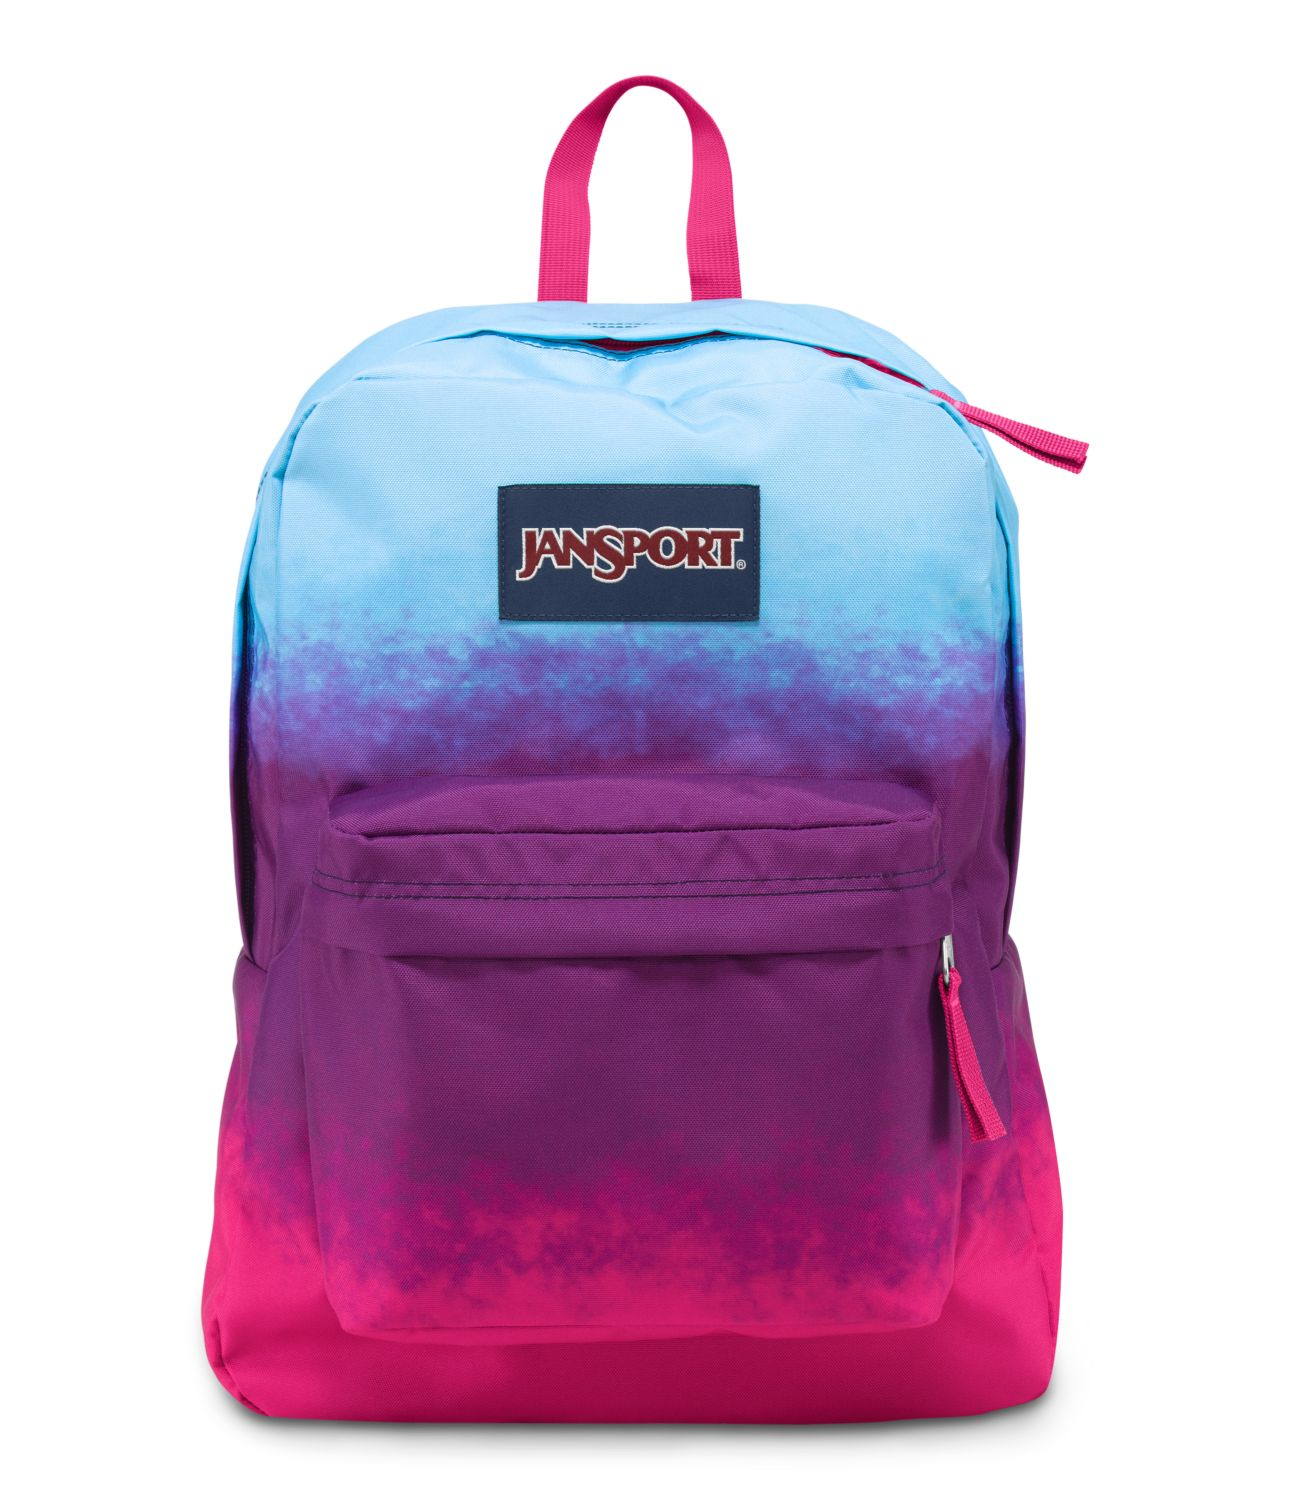 Best Backpack for Back to School